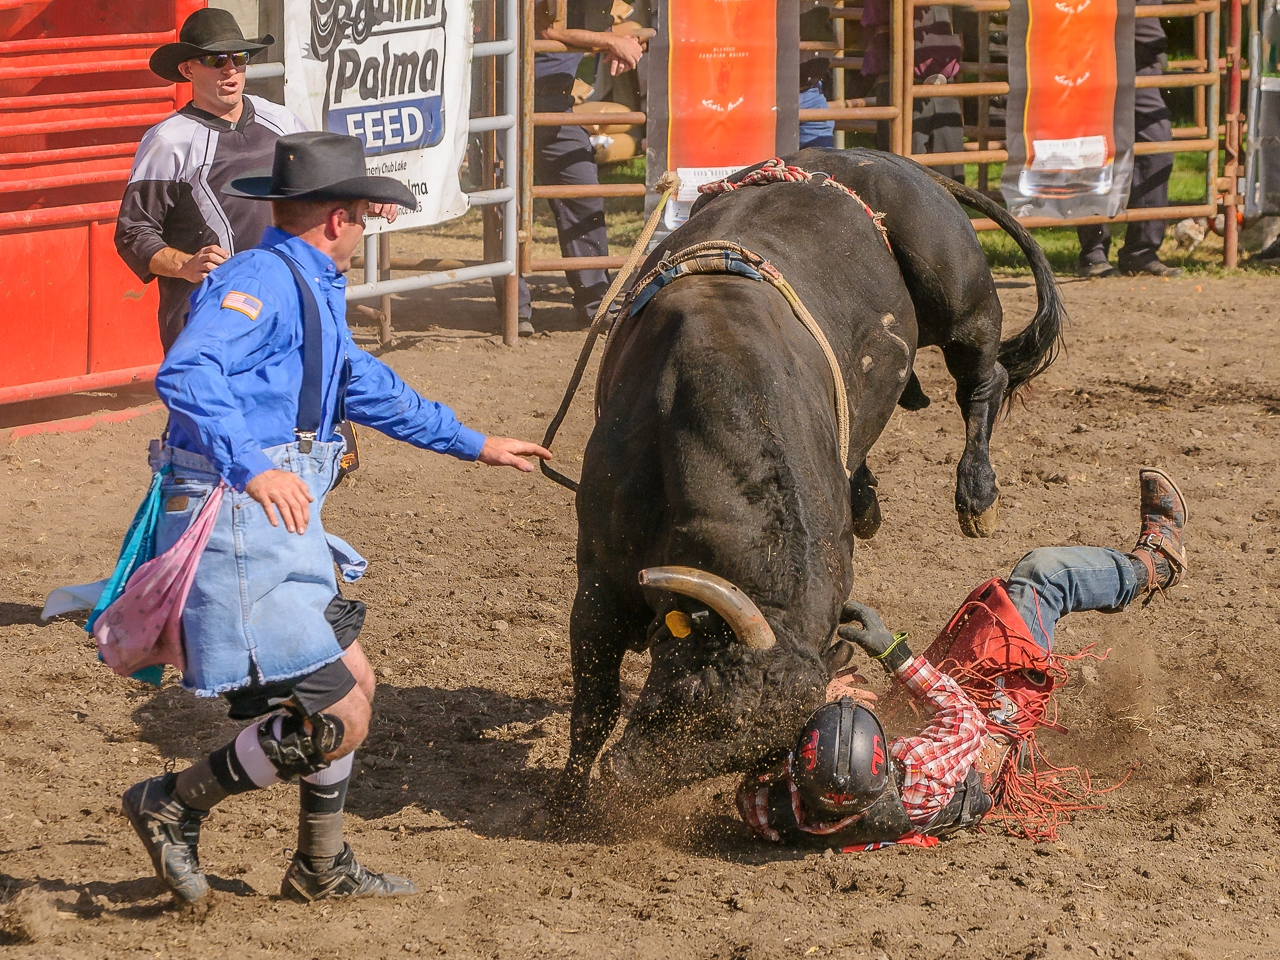 Honorable Mention -  When the Bull Wins - David Perez - Minnesota Valley Photo Club